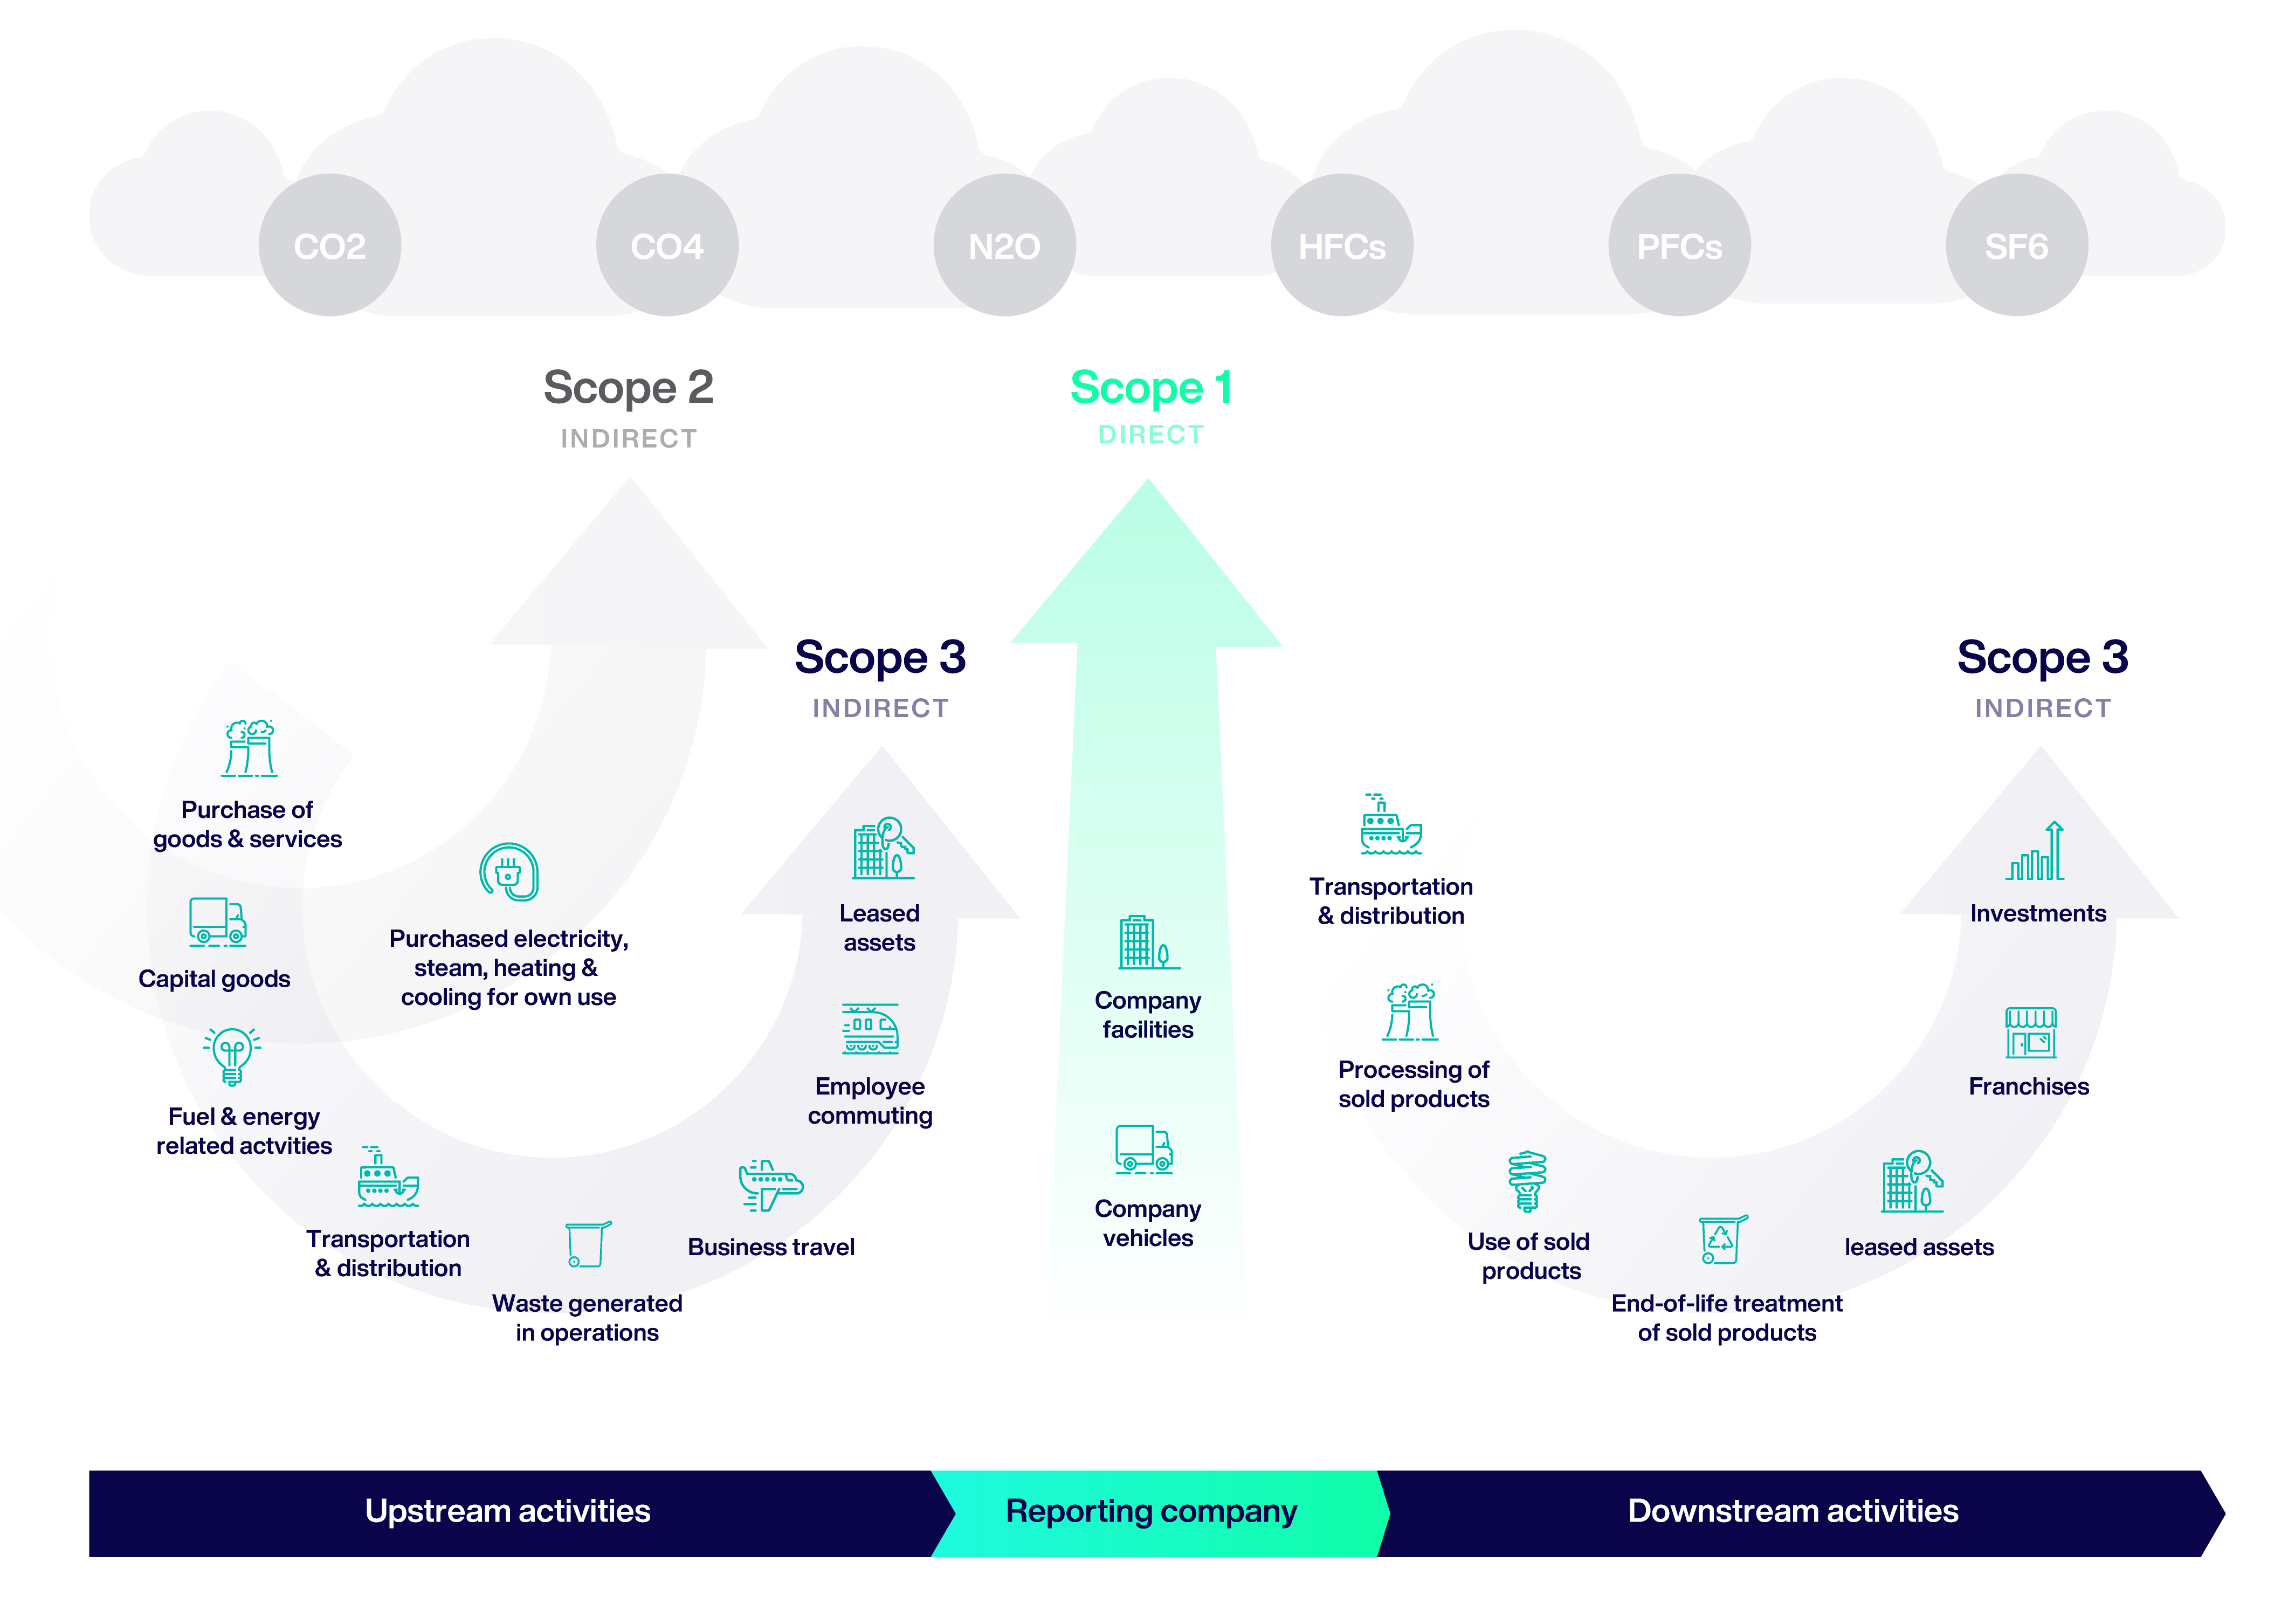 GHG Protocol Scope 1, 2 and 3